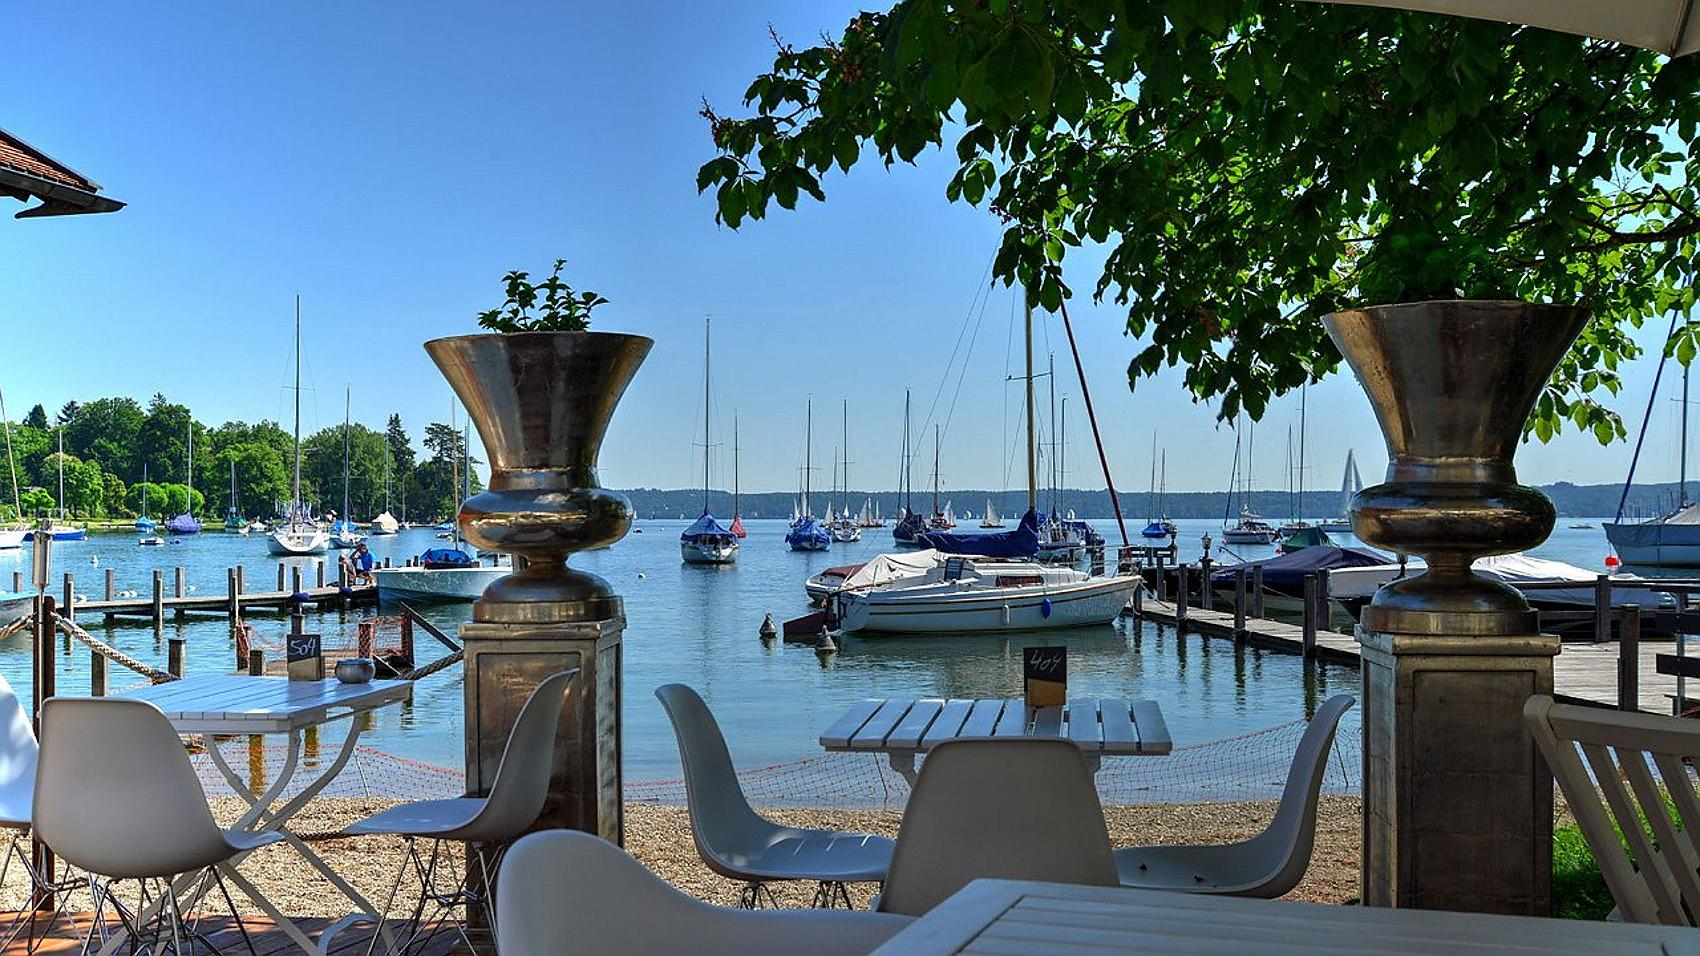 Hotel am See Tutzing in Tutzing